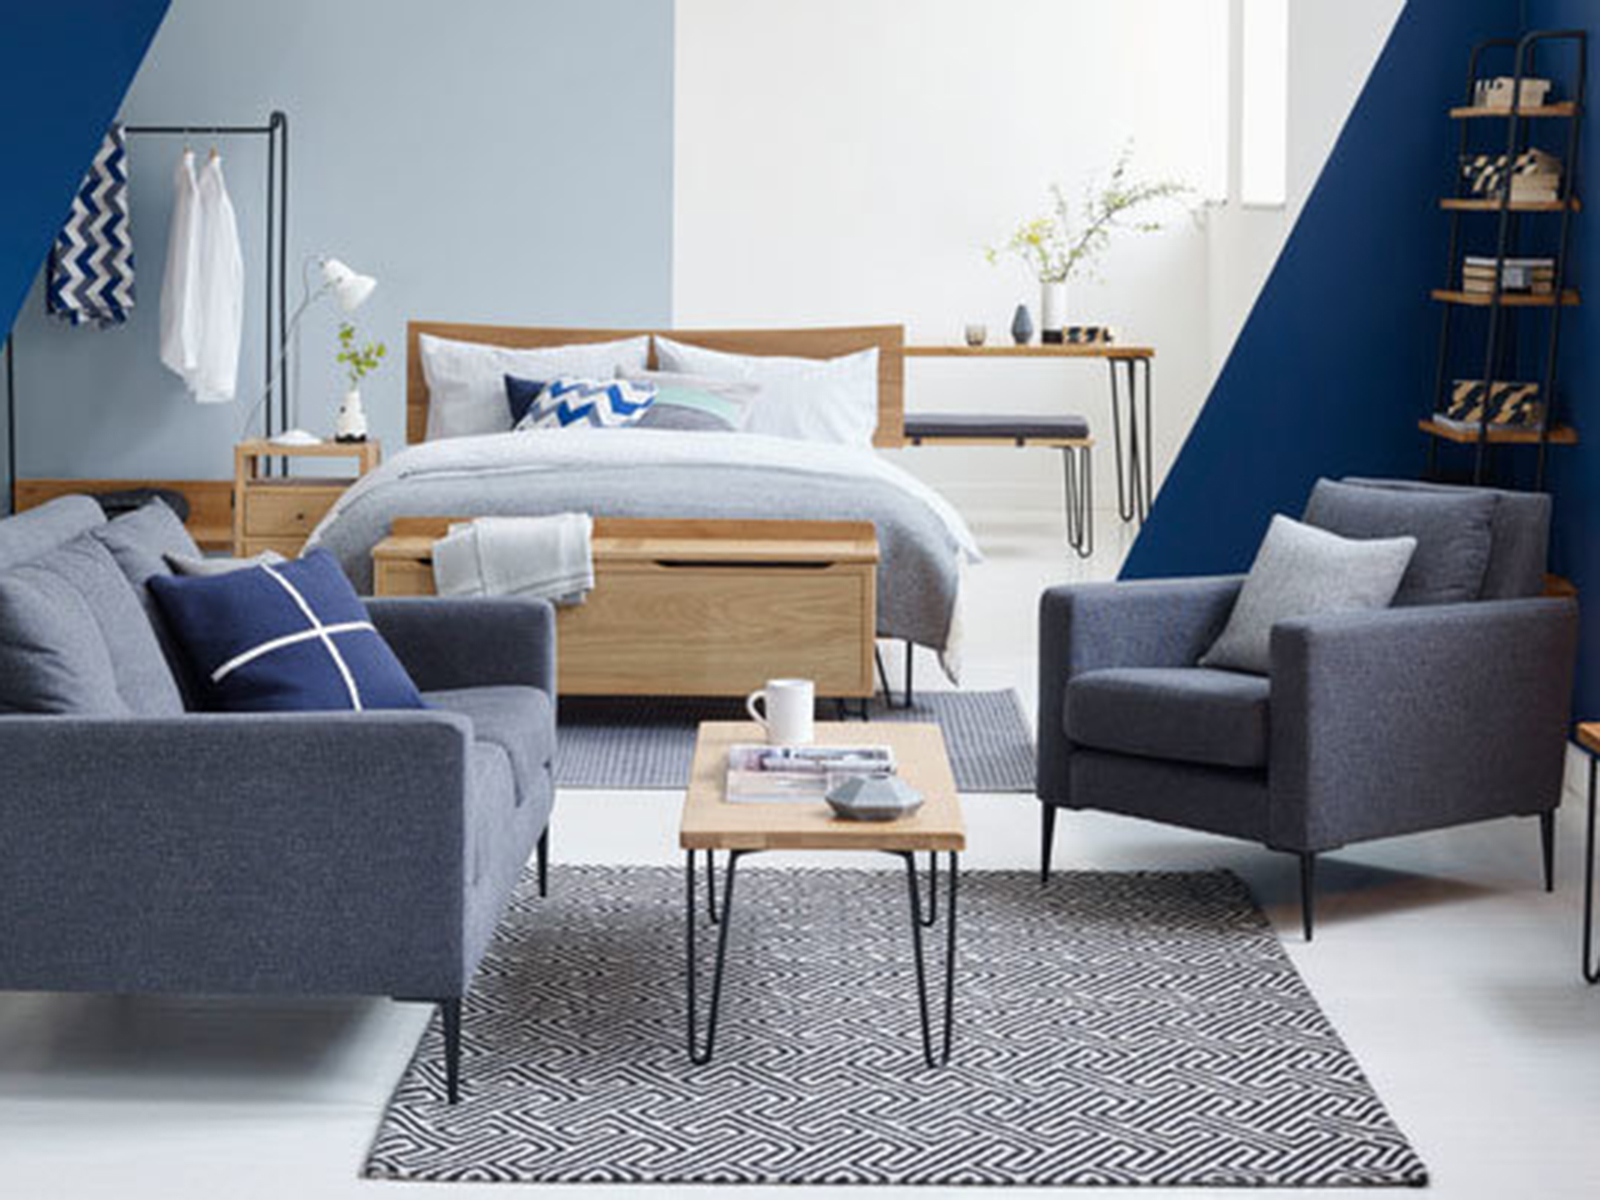 Interior Designer Sophie Robinson advises on how to make small spaces appear bigger. The Brunel collection by Heals has a mid century feel and made specifically when space is short. #sophierobinson #smallspaceliving #midcentury #heals